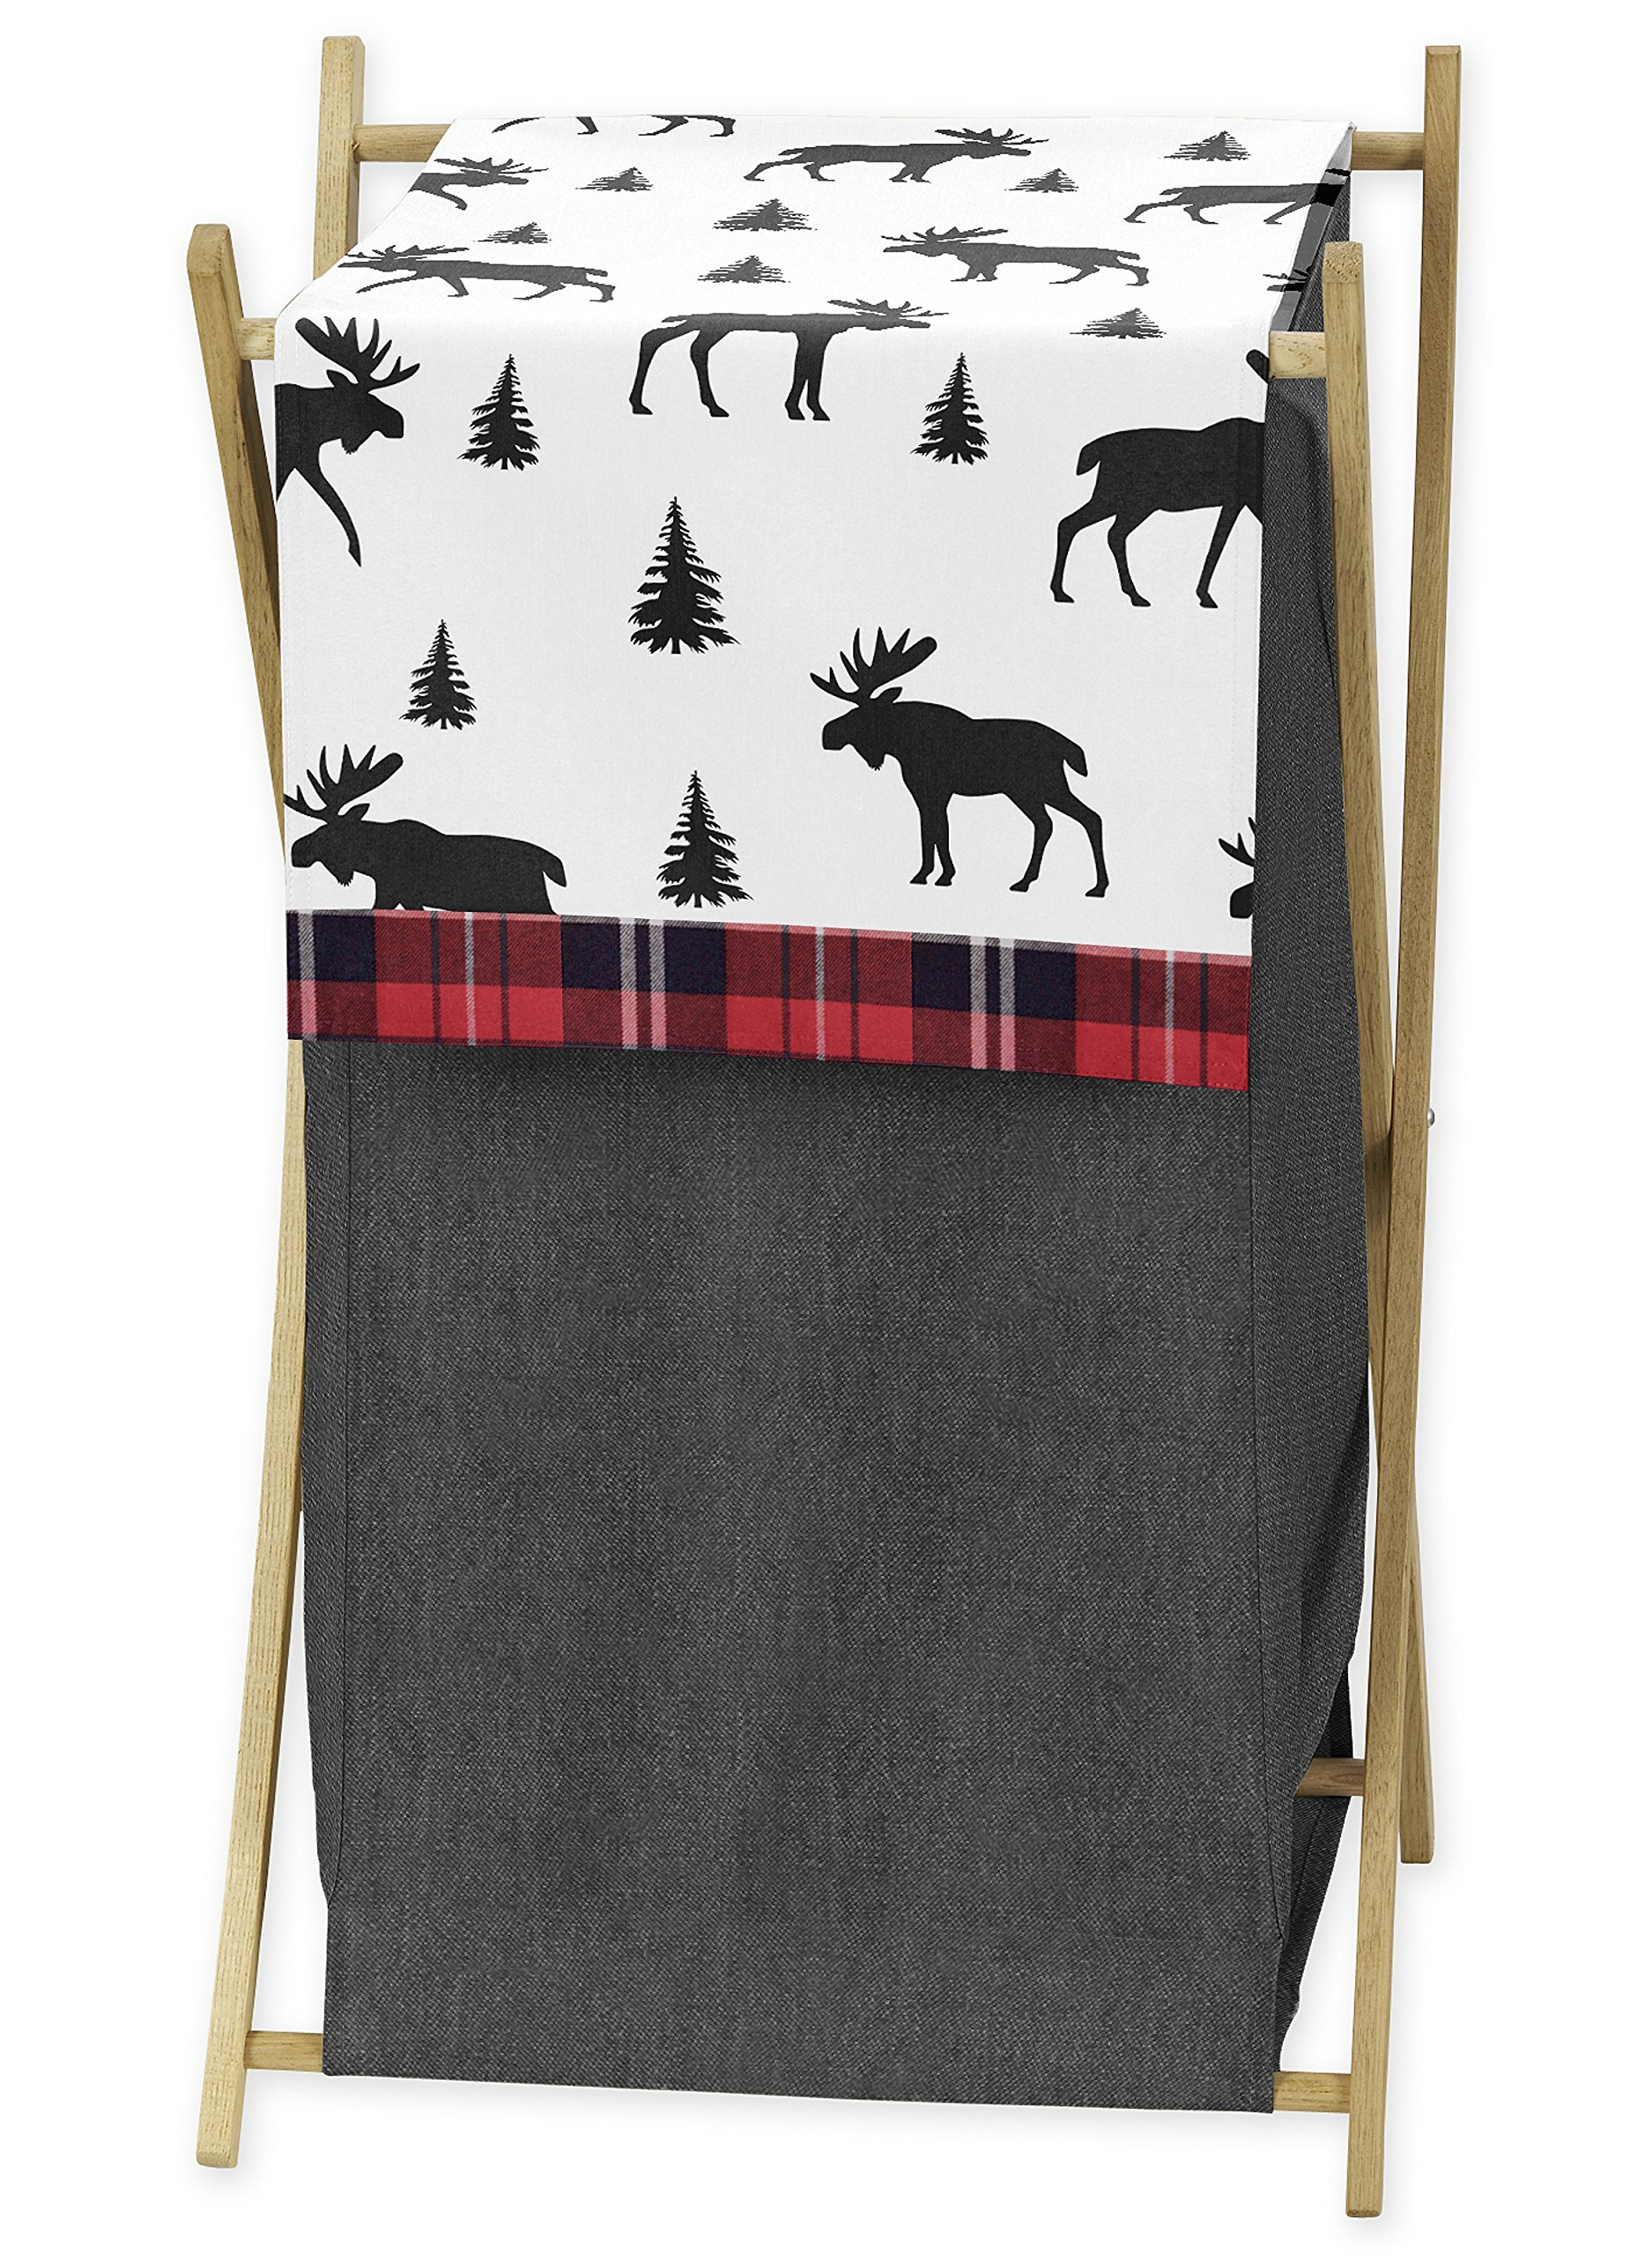 Sweet Jojo Designs Grey, Black and Red Woodland Plaid and Moose Baby Kid Clothes Laundry Hamper for Rustic Patch Collection by Sweet Jojo Designs